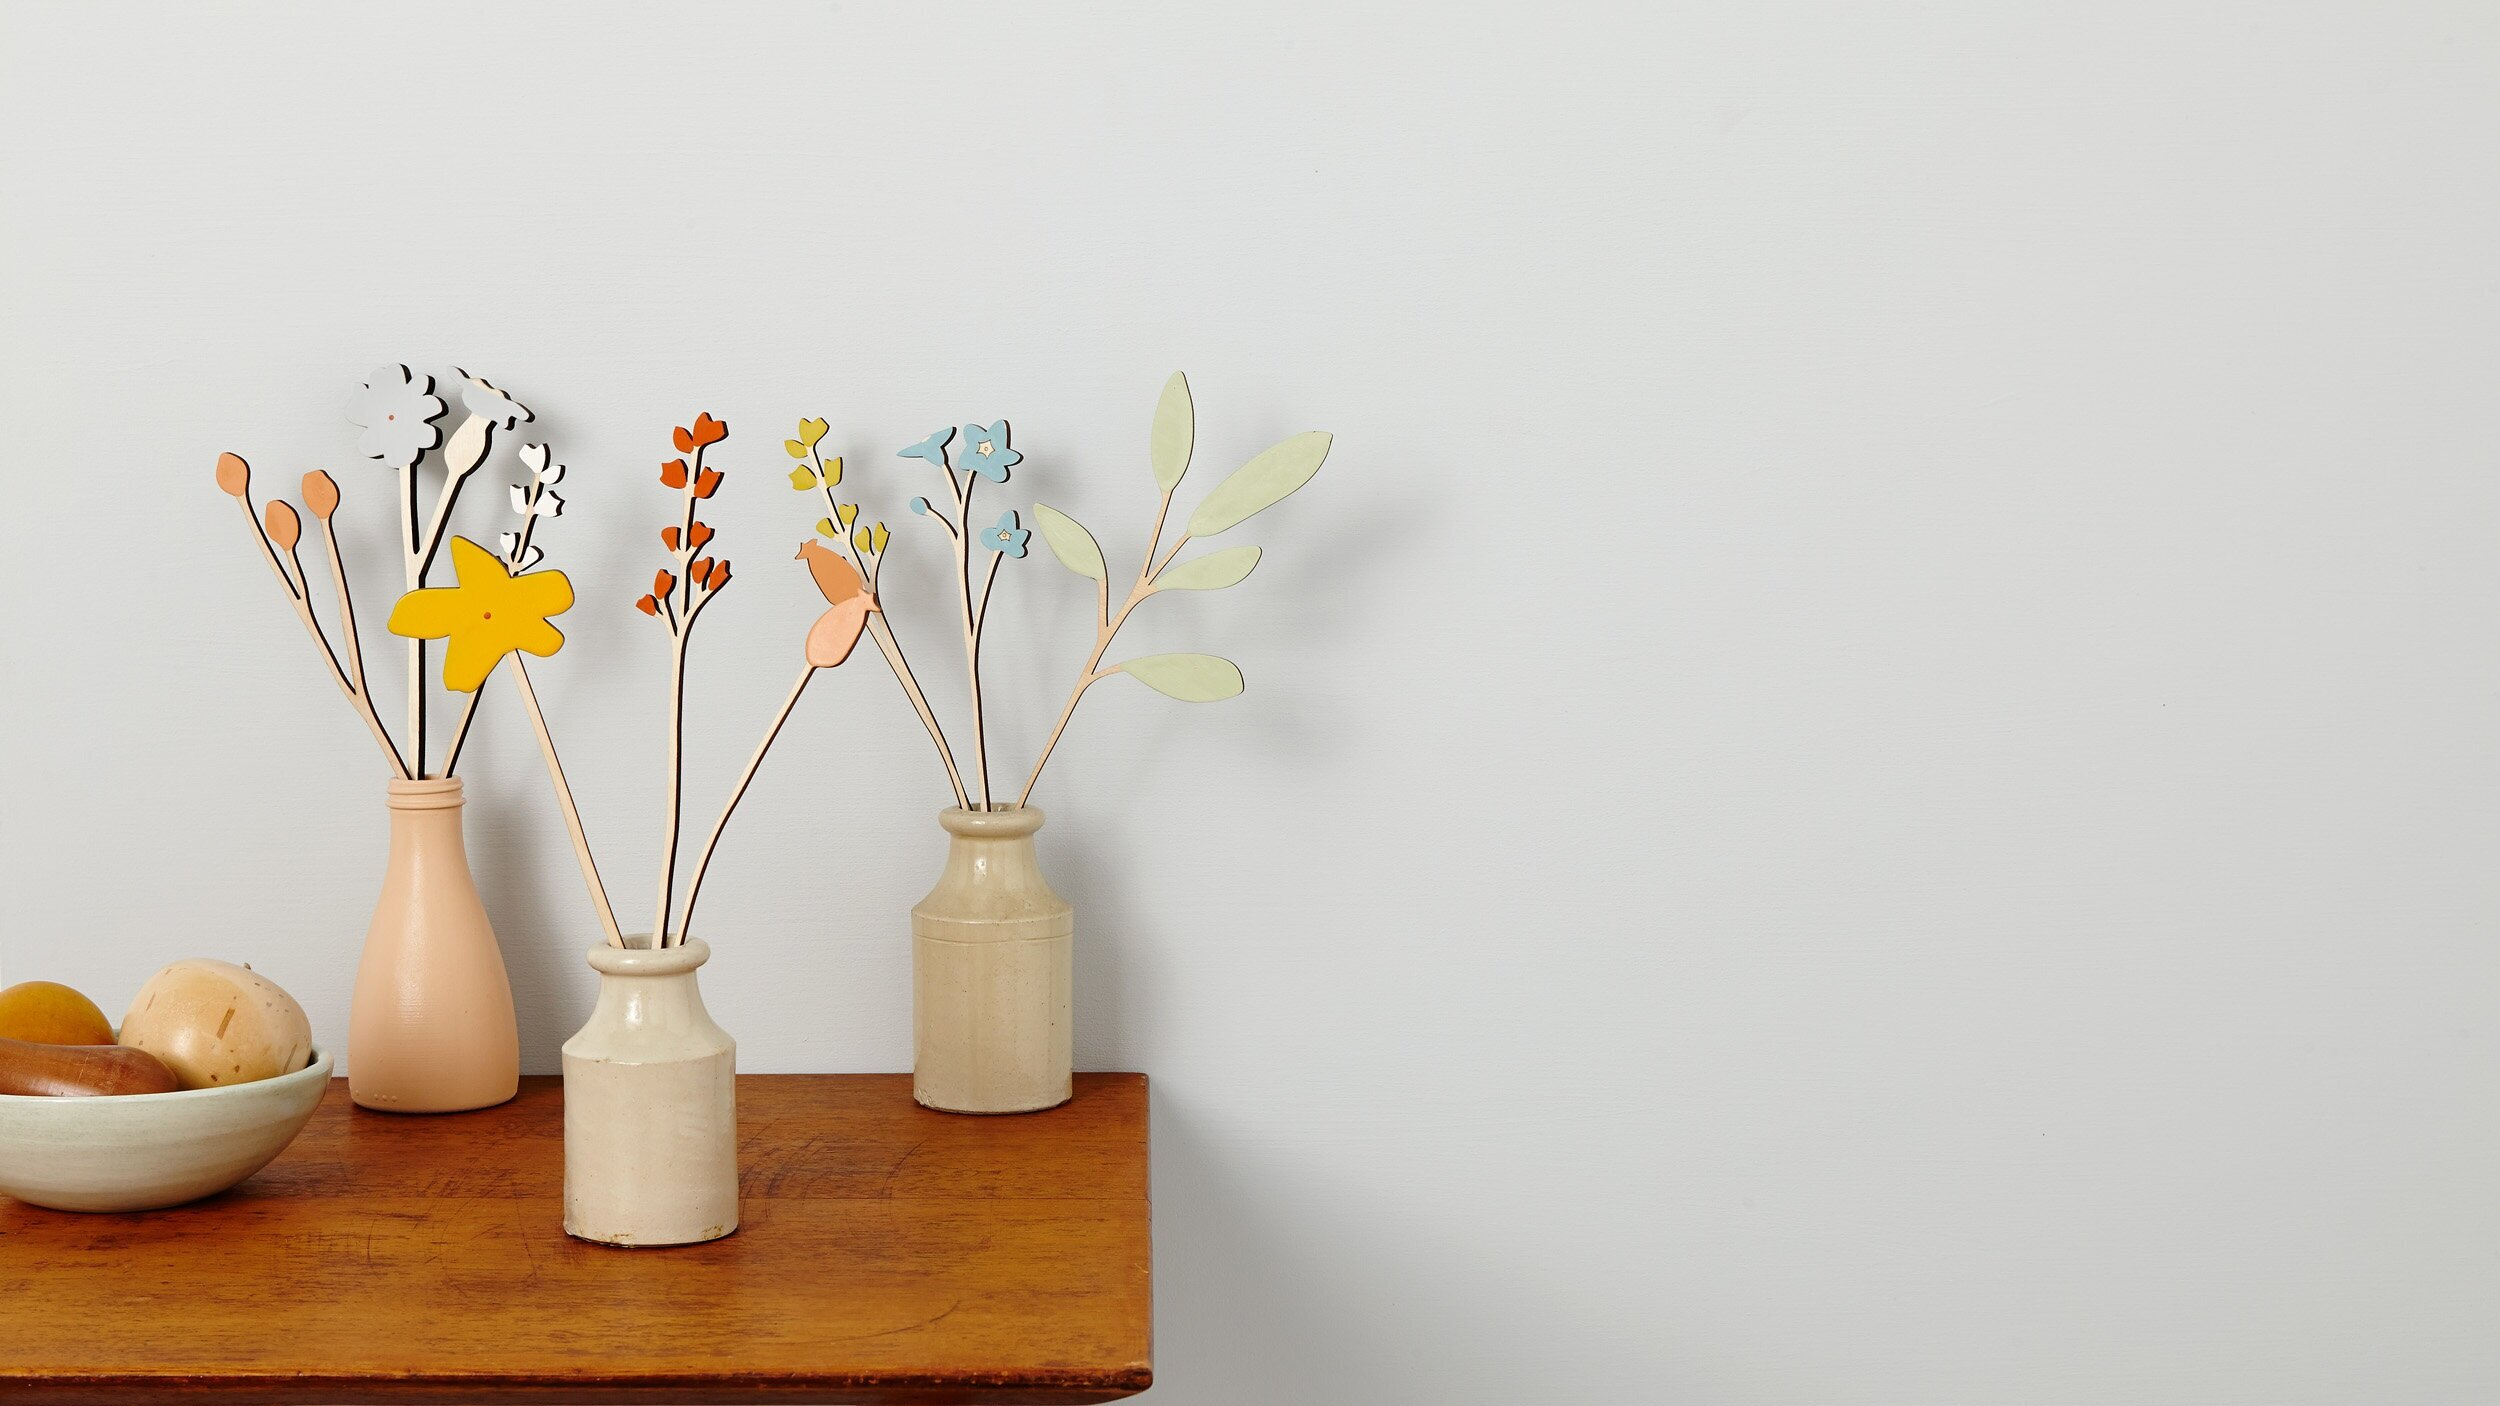 FOLK - A new collection of wooden ornaments celebrating folk culture and traditions.